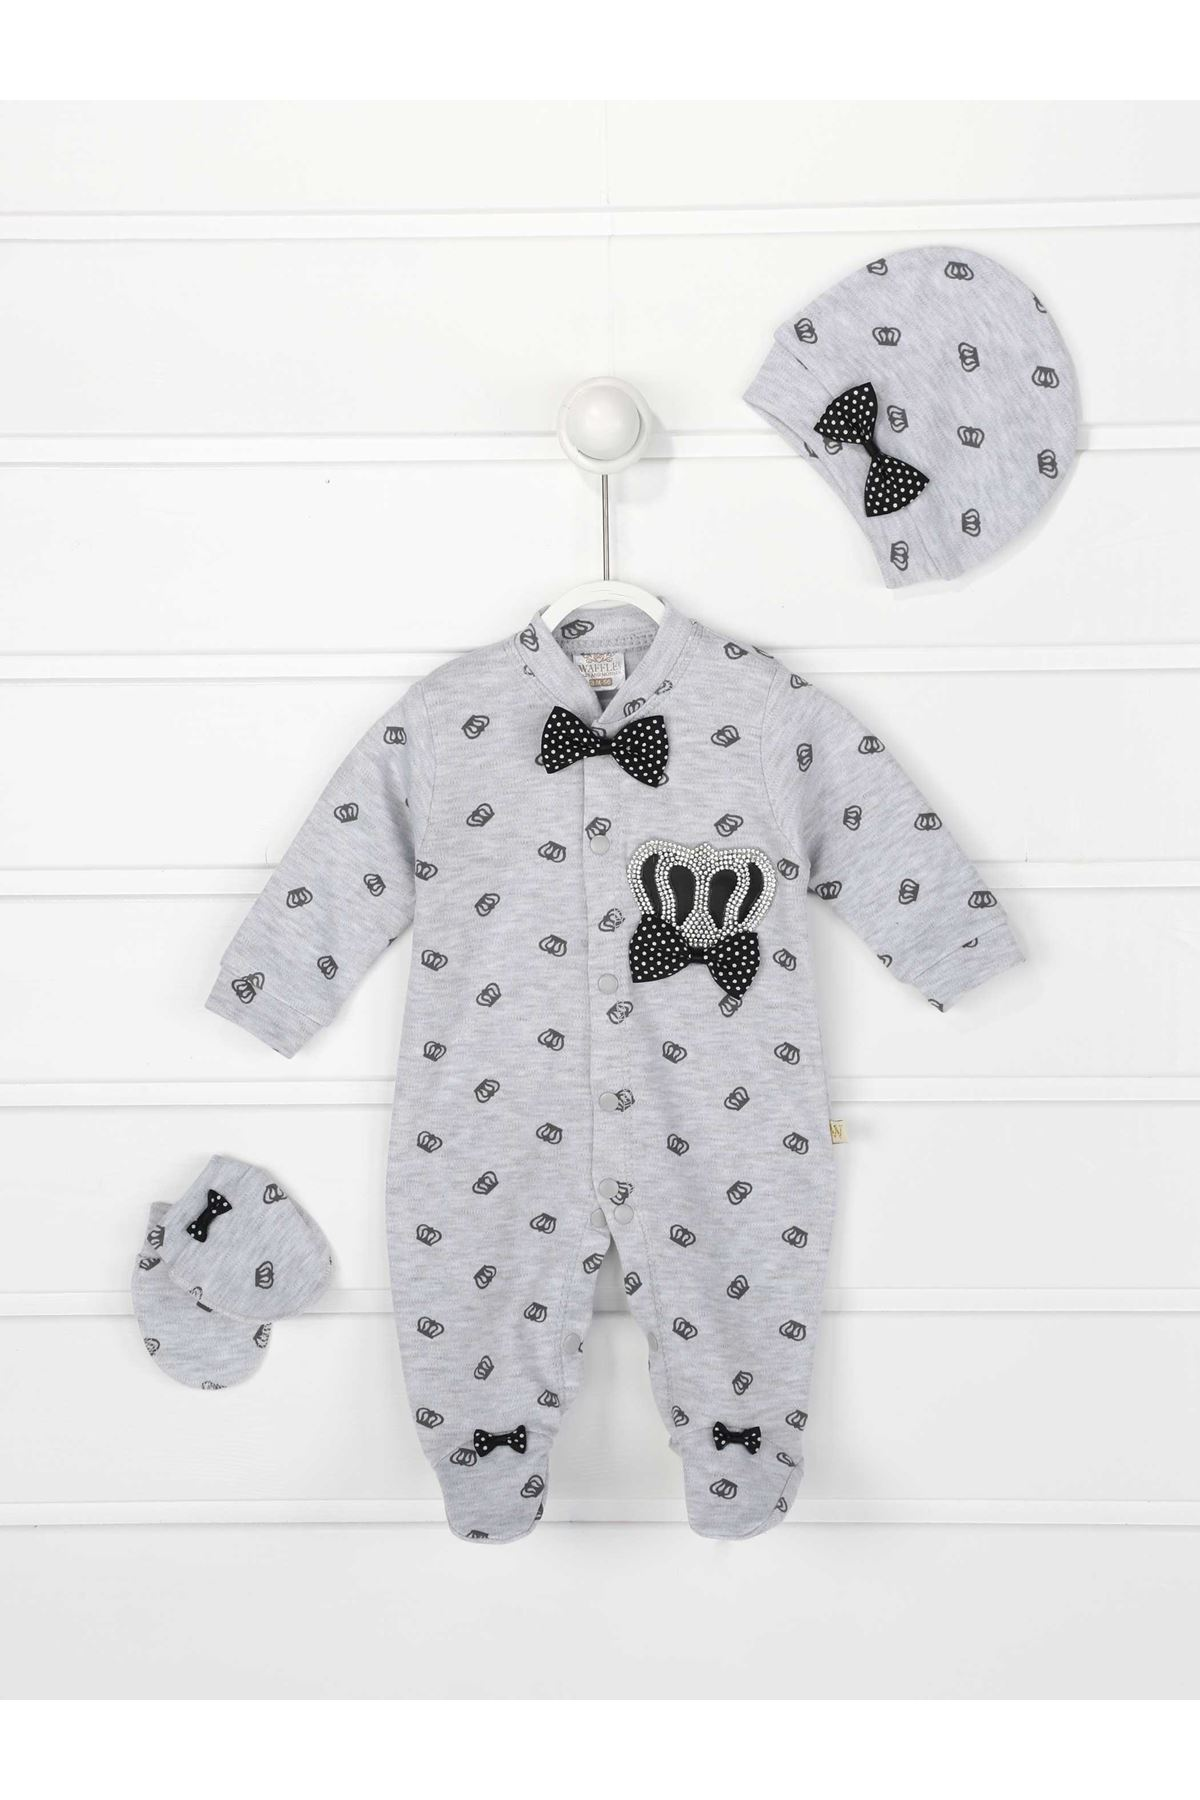 Gray King Crowned Male Baby 3 PCs Rompers